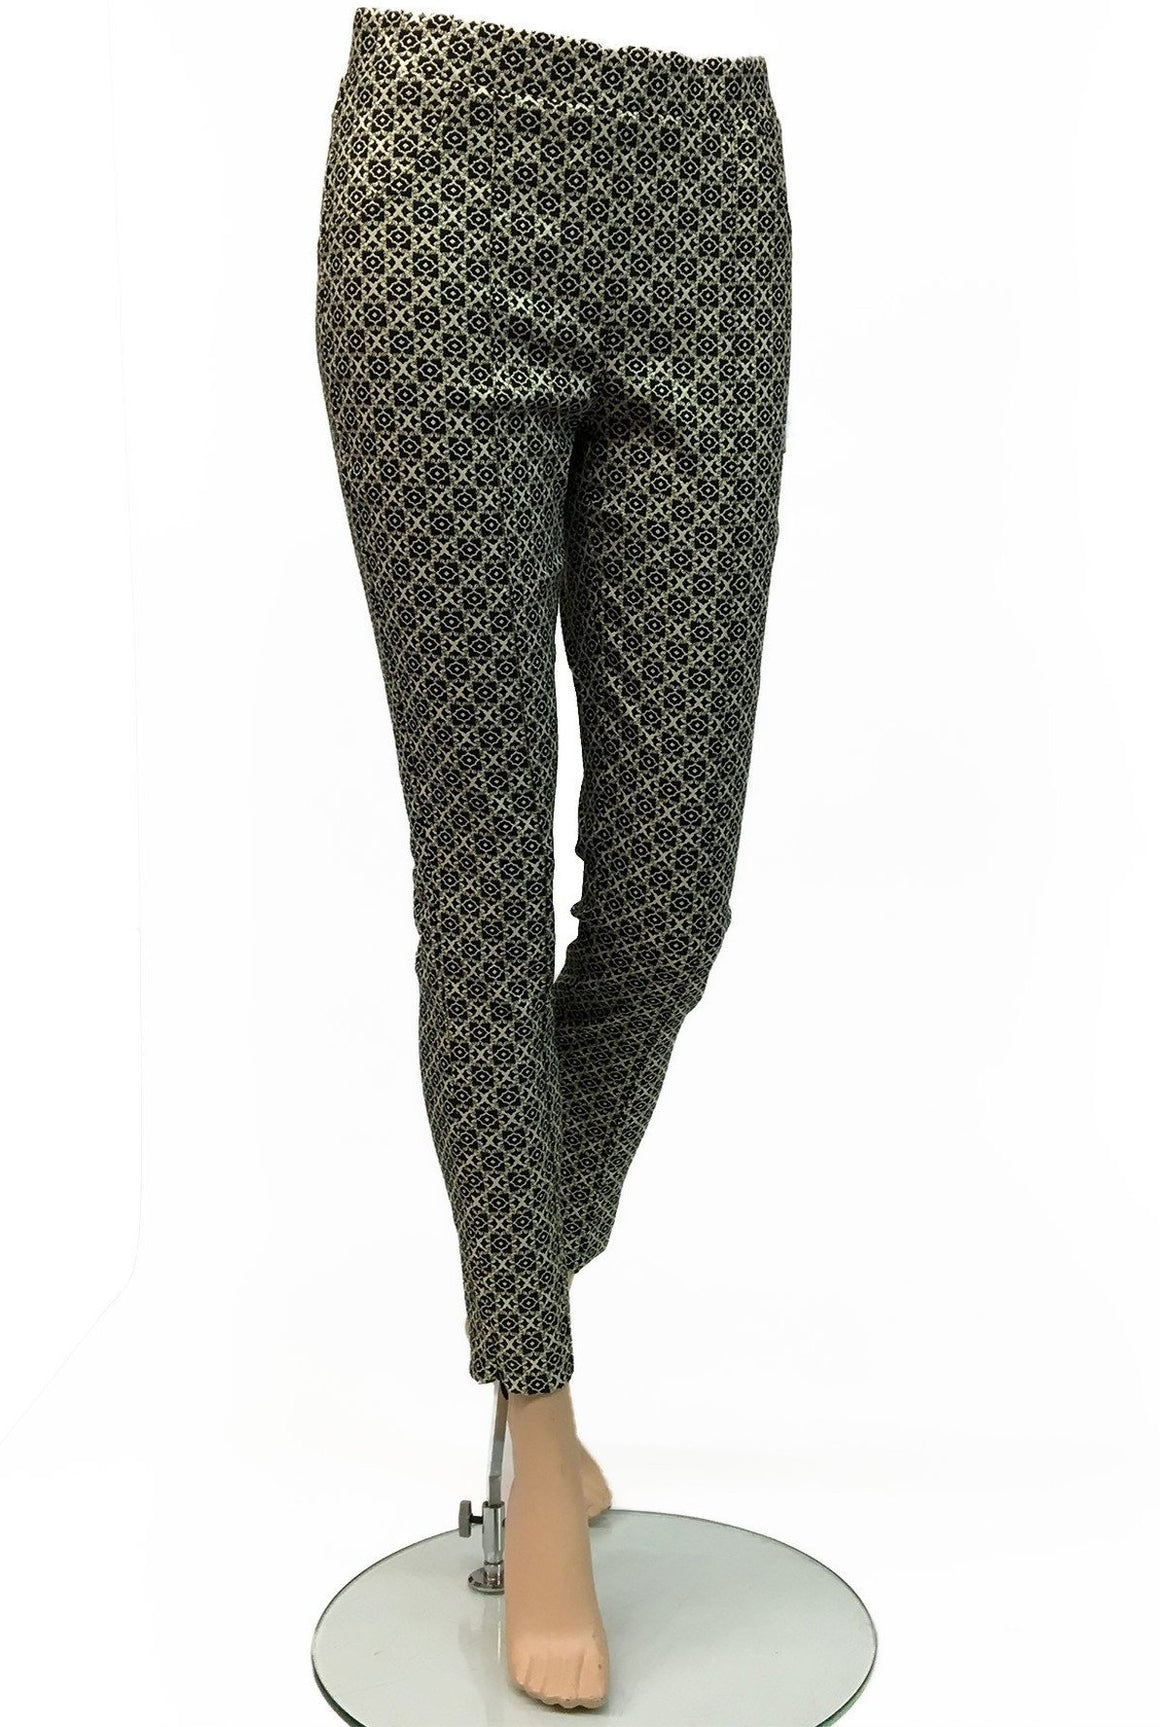 Women's Joseph Ribkoff | Style# 164757 Pull-On Pant | Black and Metallic Gold